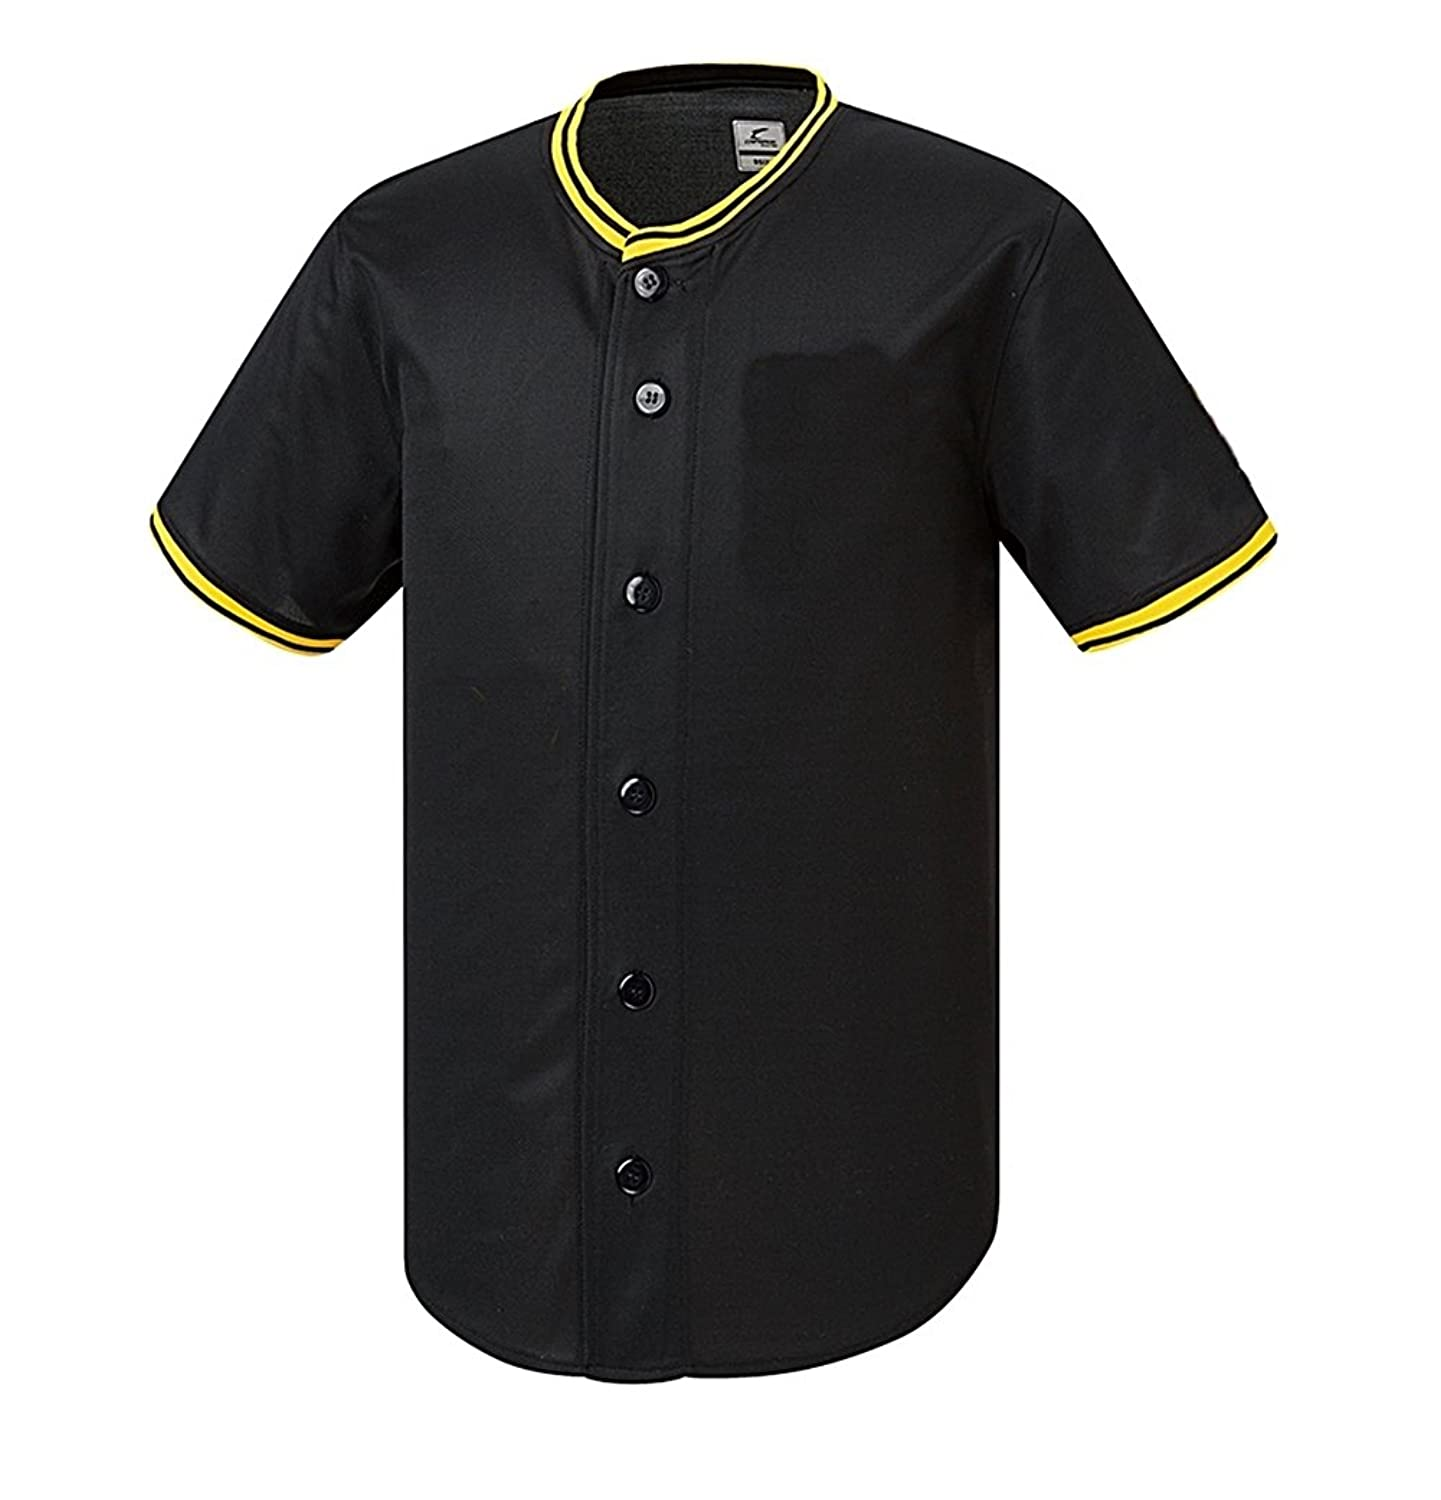 myglory77mall SHIRT メンズ B06XKRR7RZBlack/Yellow Neck XXS US(S tag Asian)